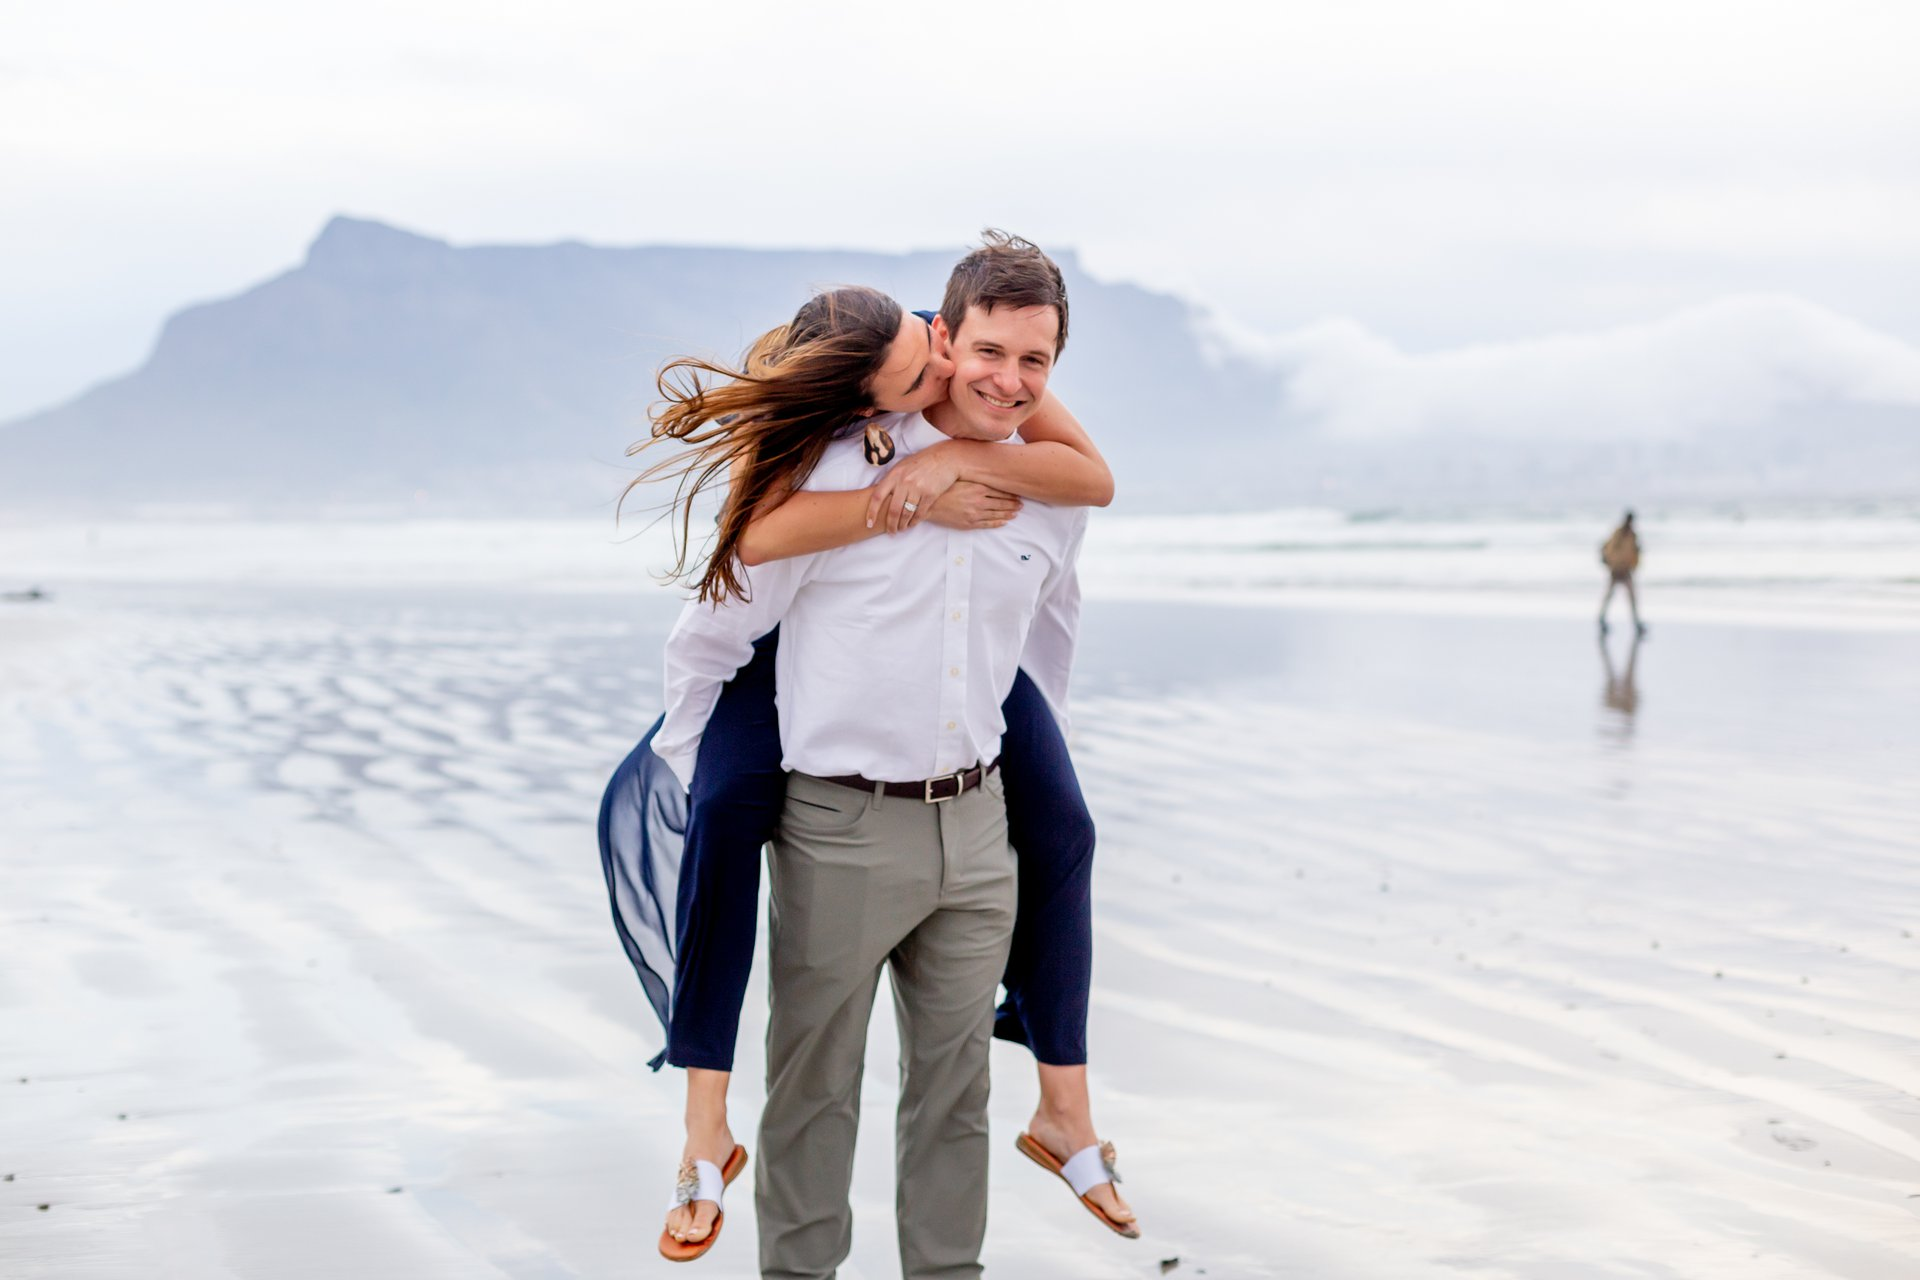 Flytographer Travel Story - Honeymoon in Cape Town